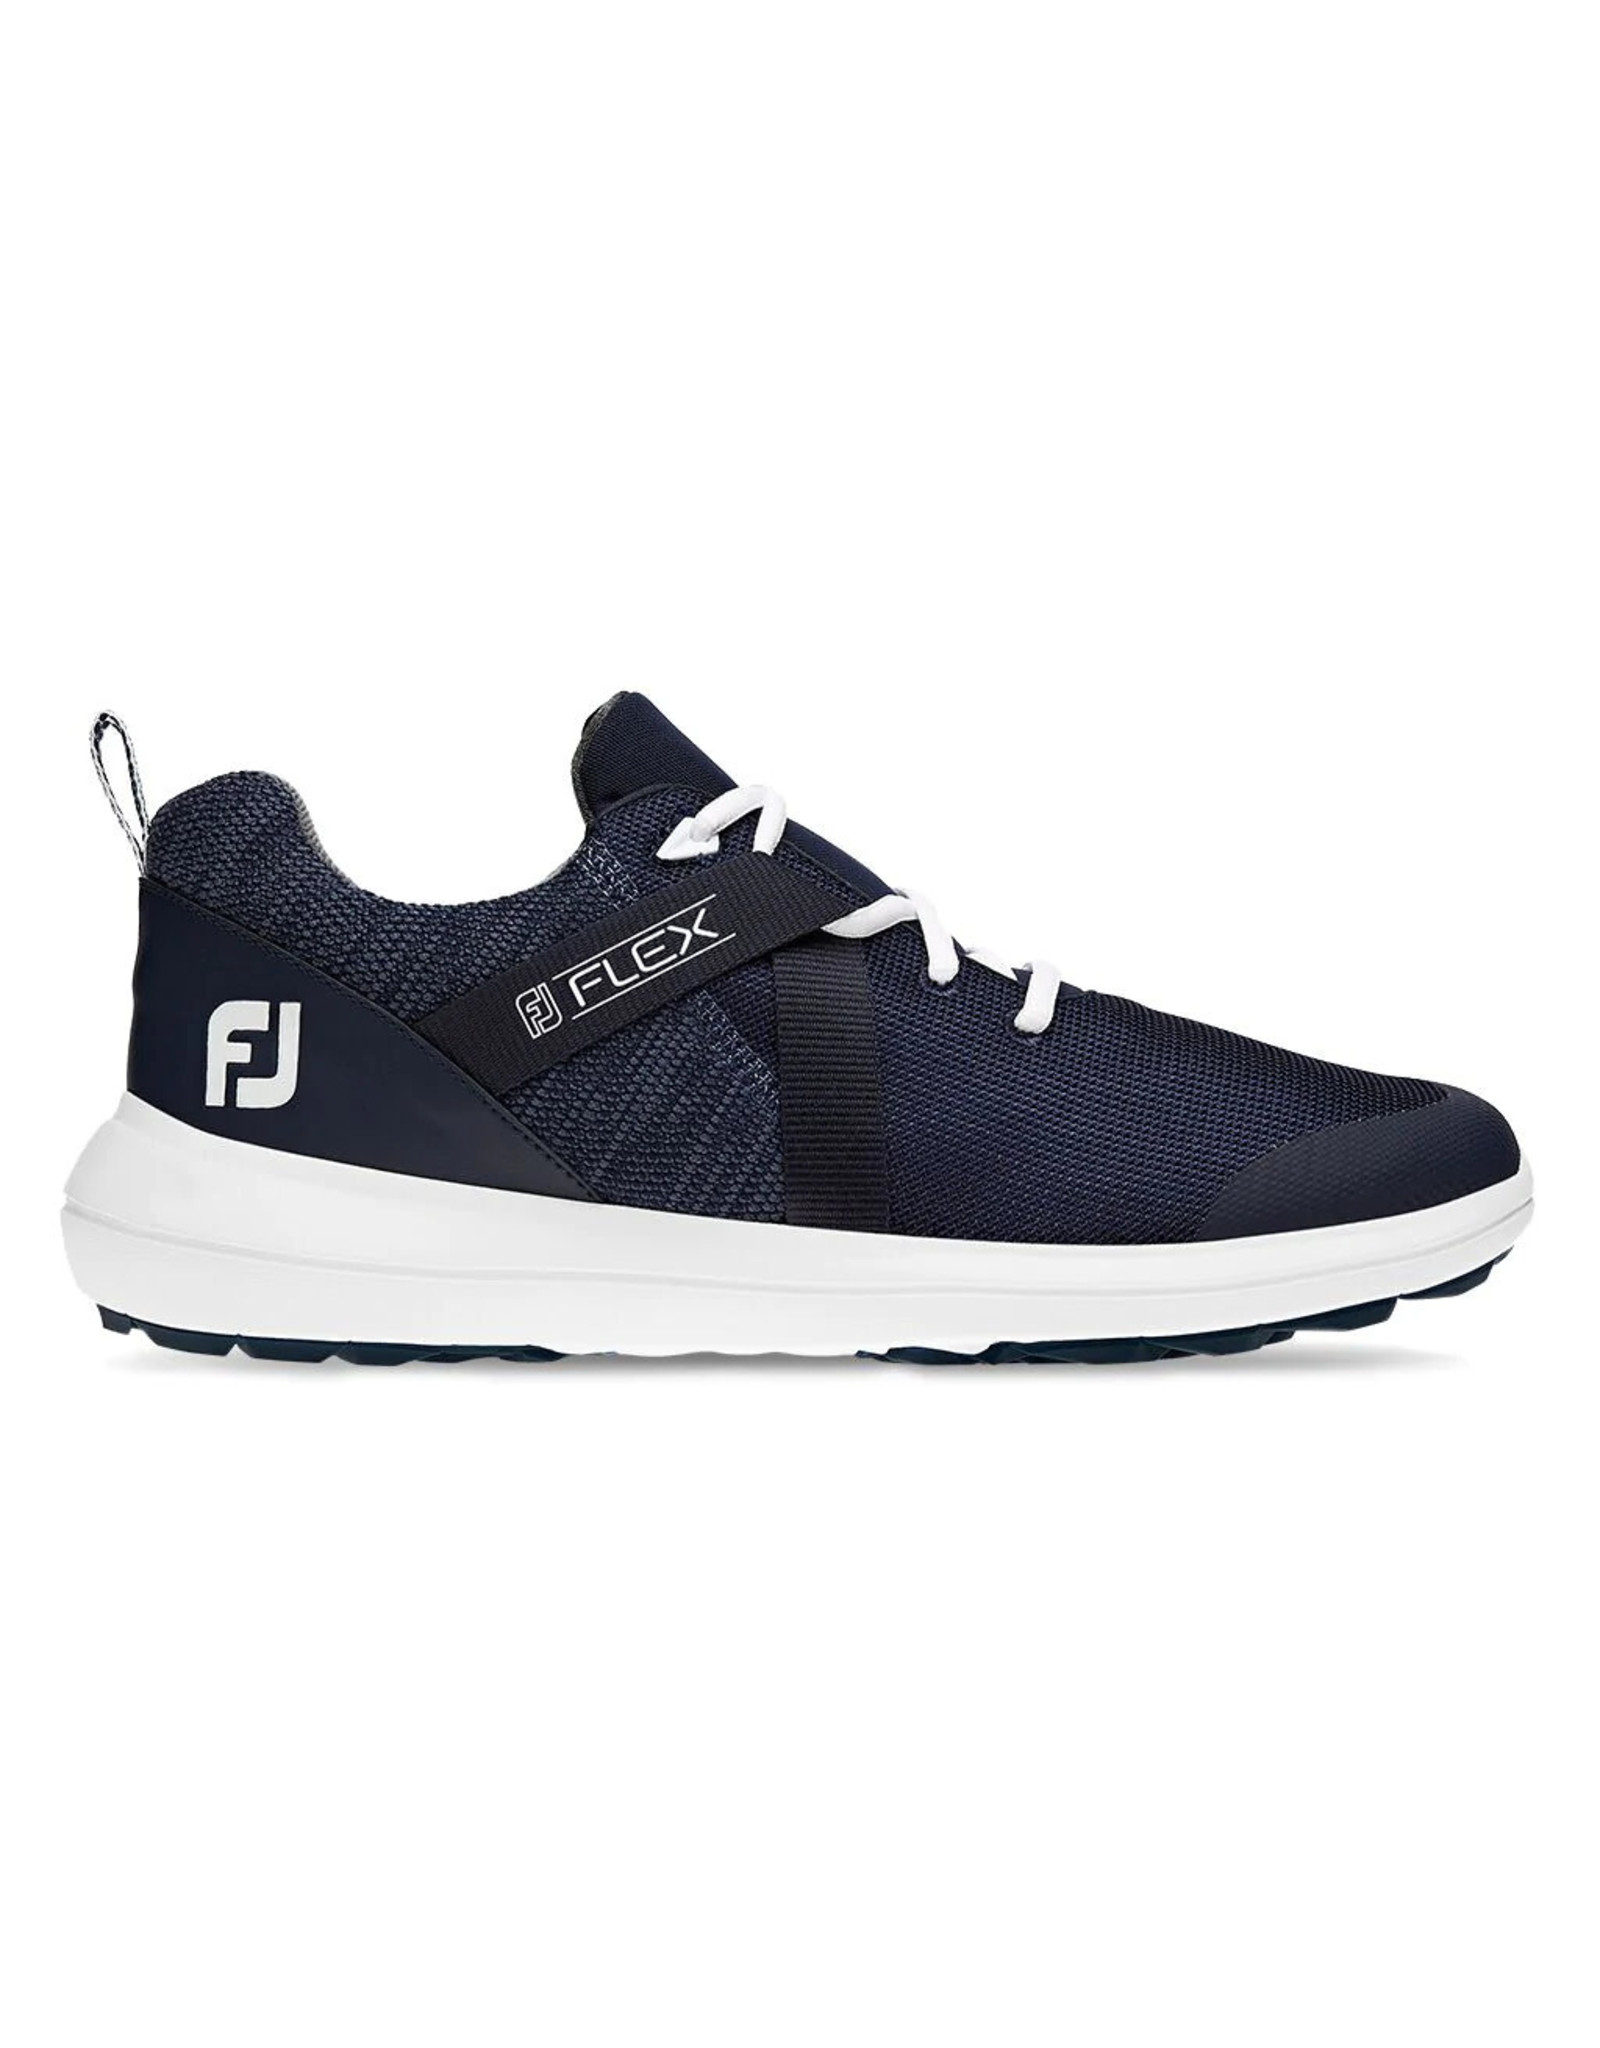 Footjoy FJ Flex SPKLS Mens